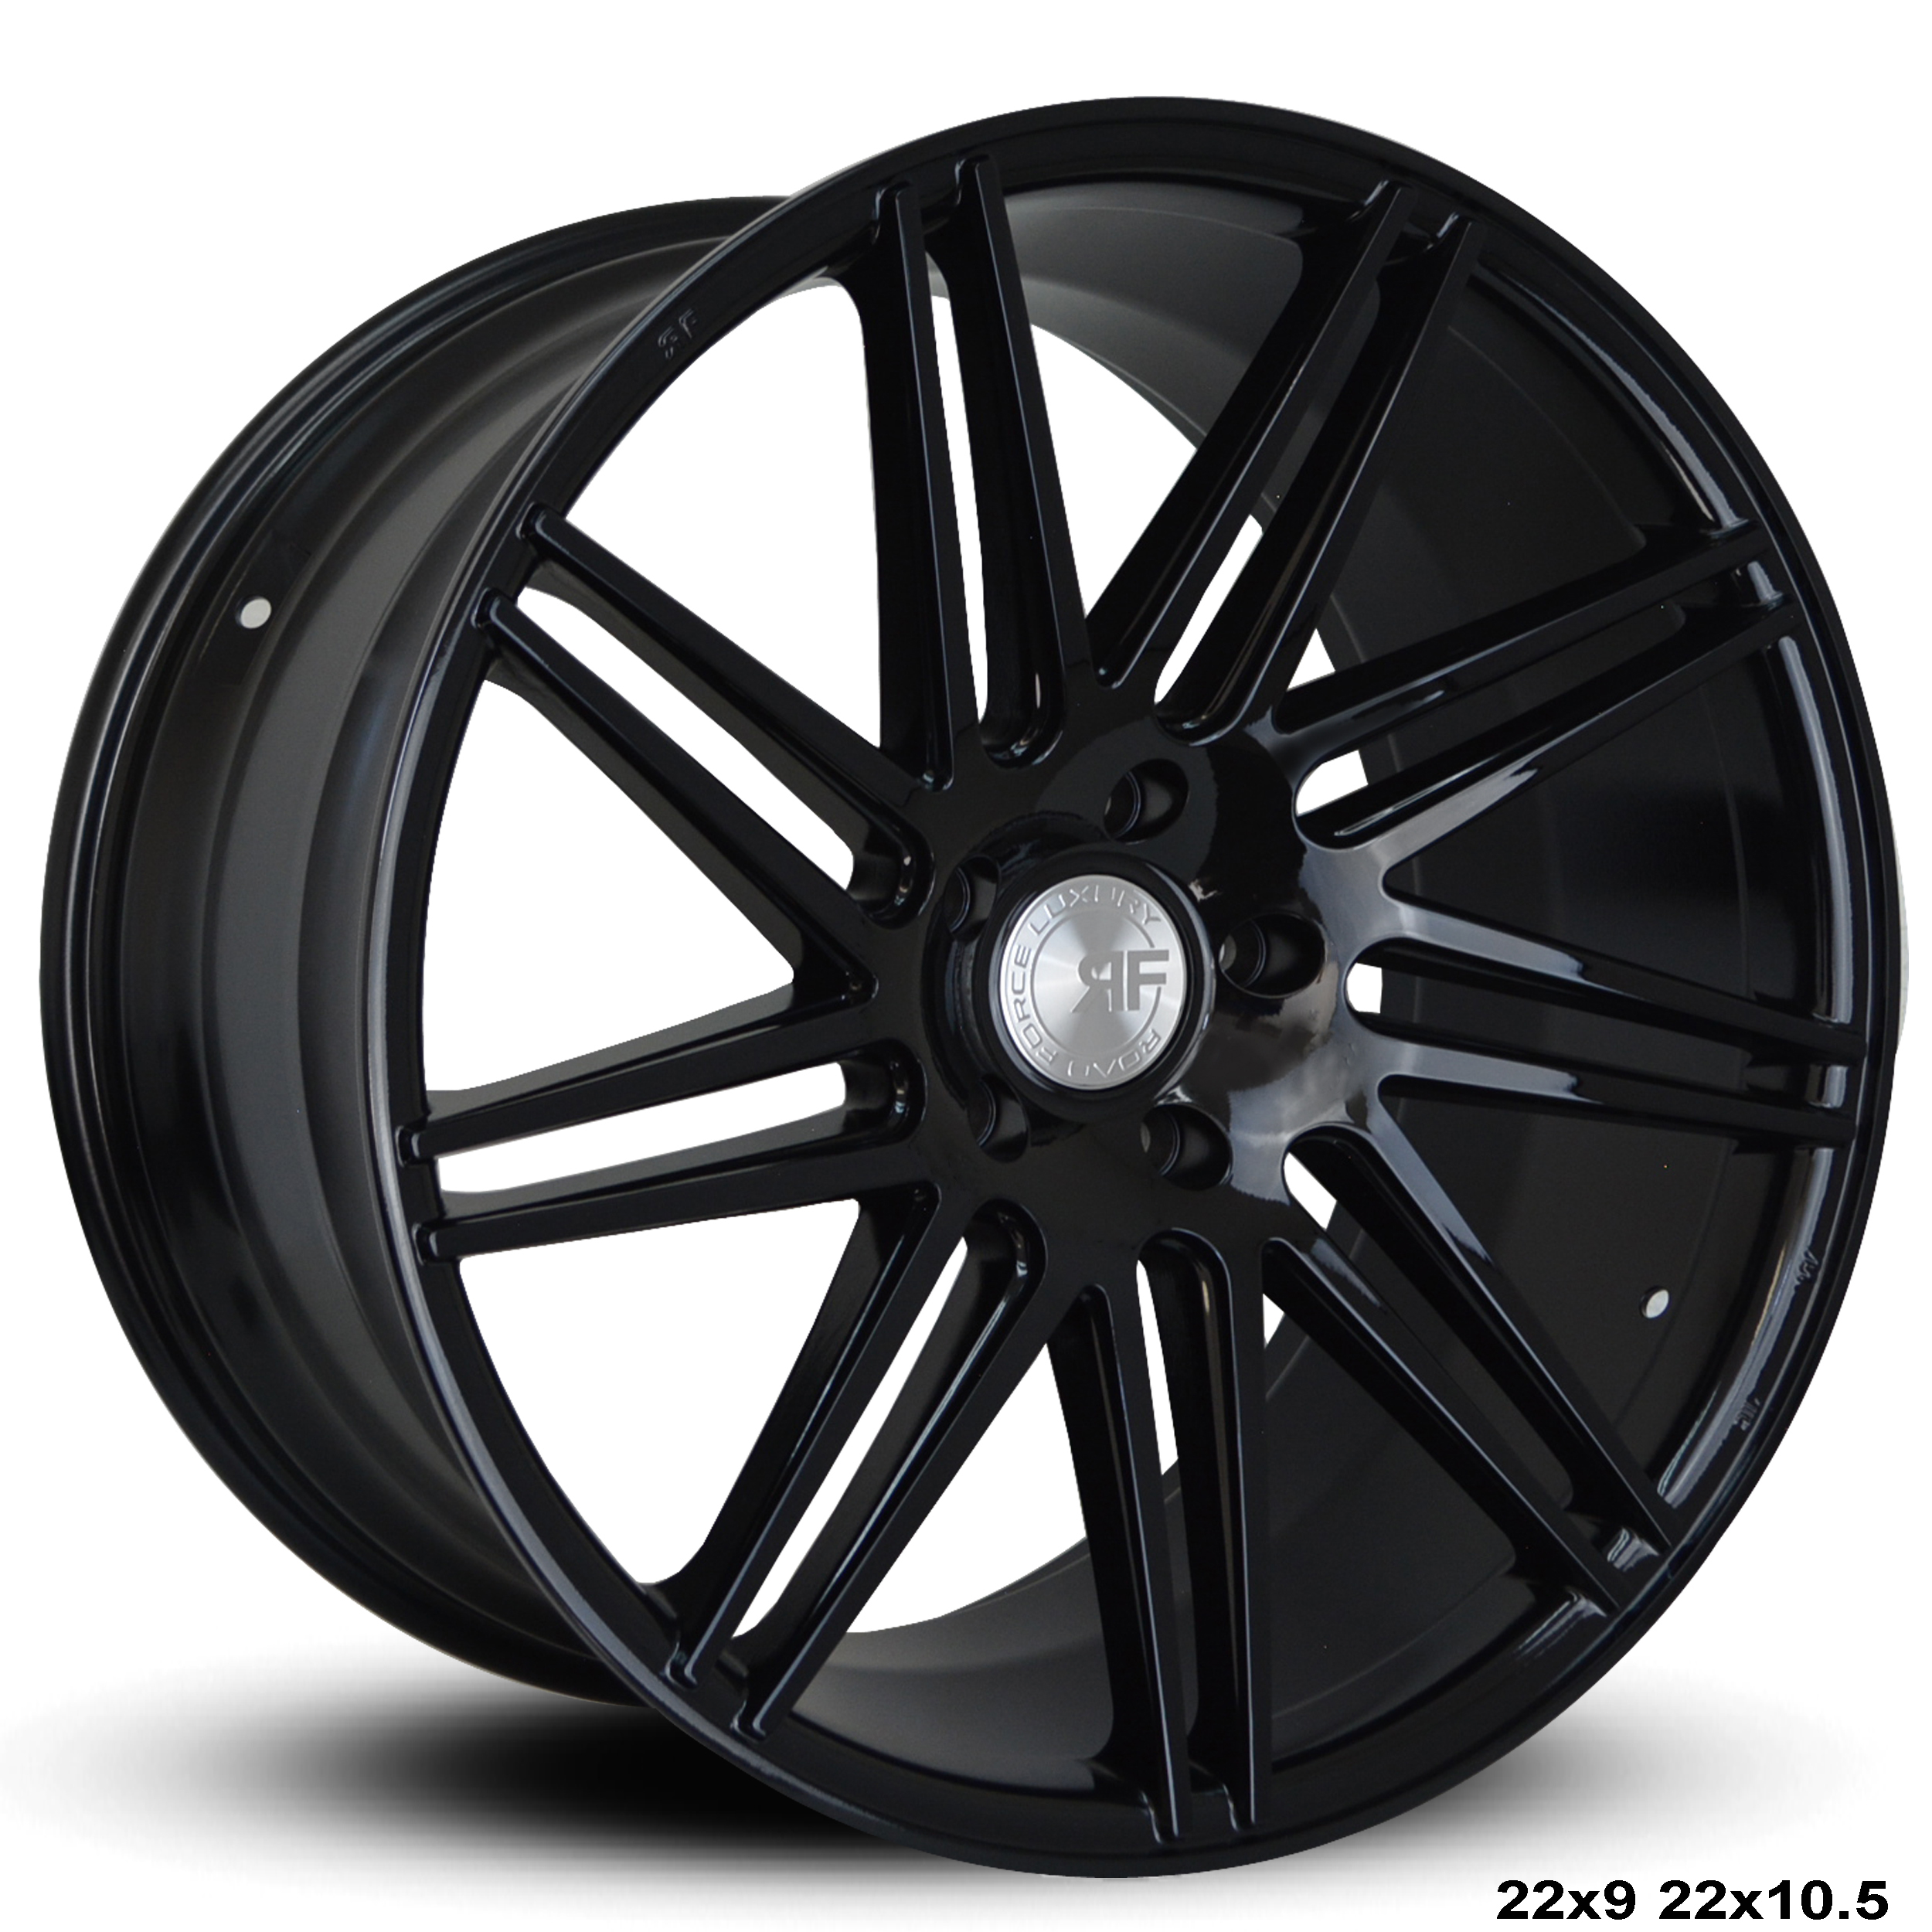 for new hakkapelliittaa winter style bmw nokian here tires factory of rims click with and sale